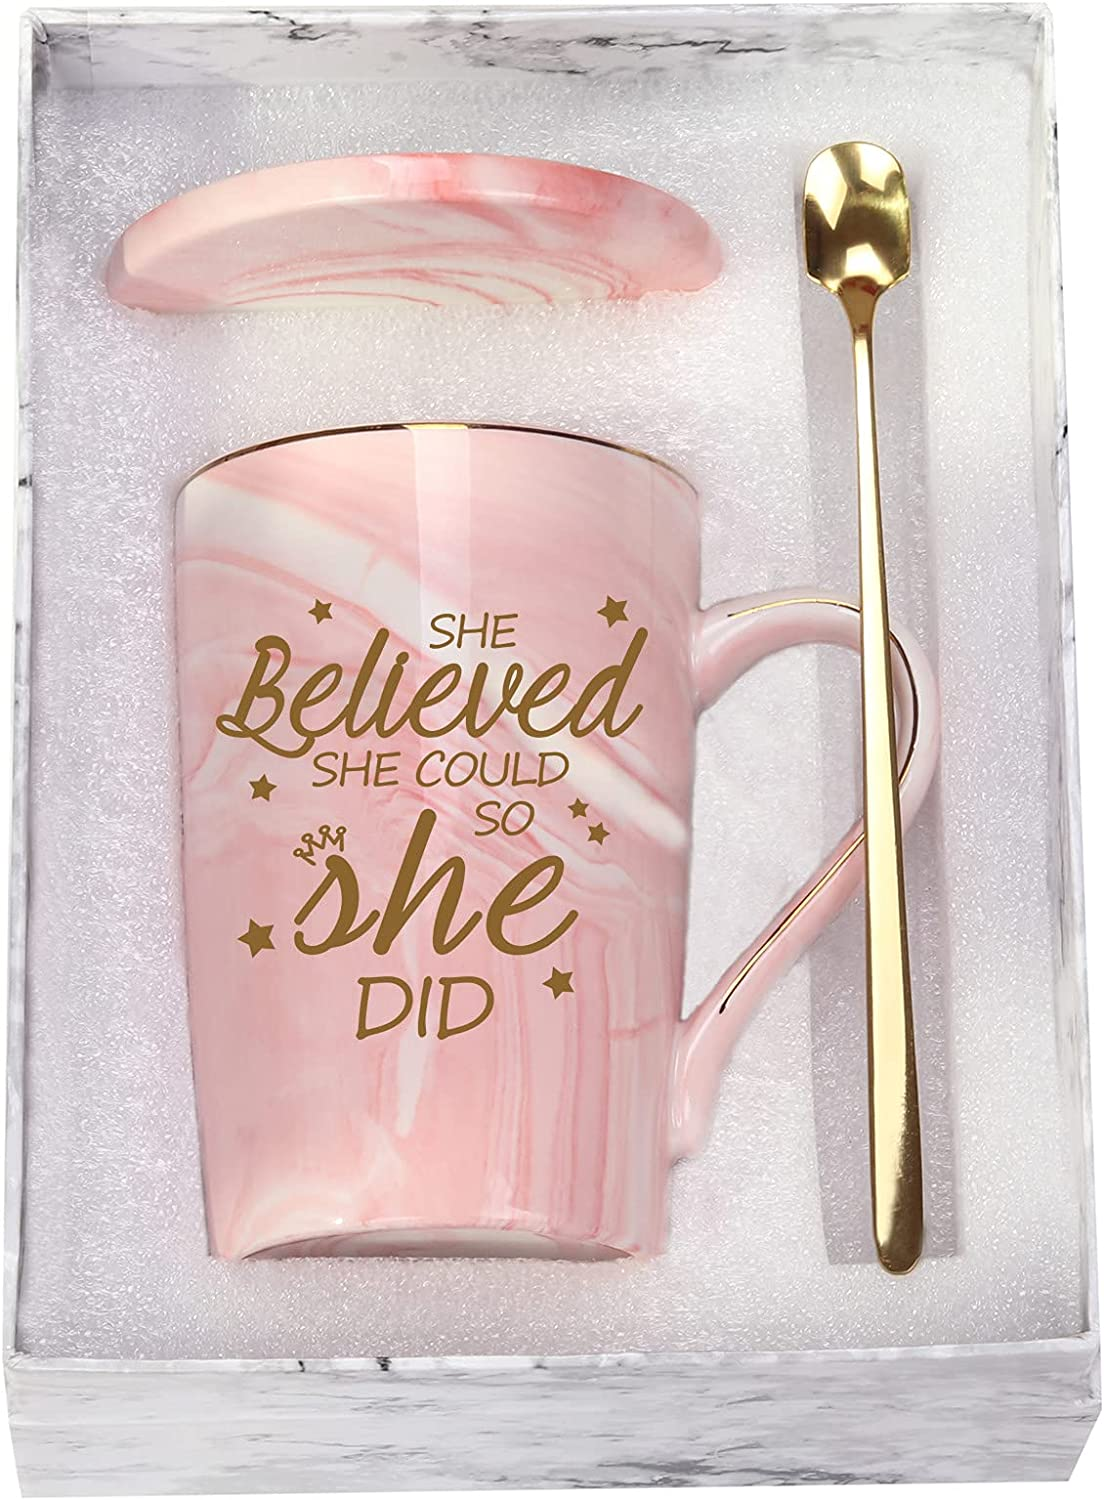 She Believed She Could So She Did Mug Graduation Gifts for Women Her Inspirational Gifts for Women 14 Ounce Pink with Gift Box Set